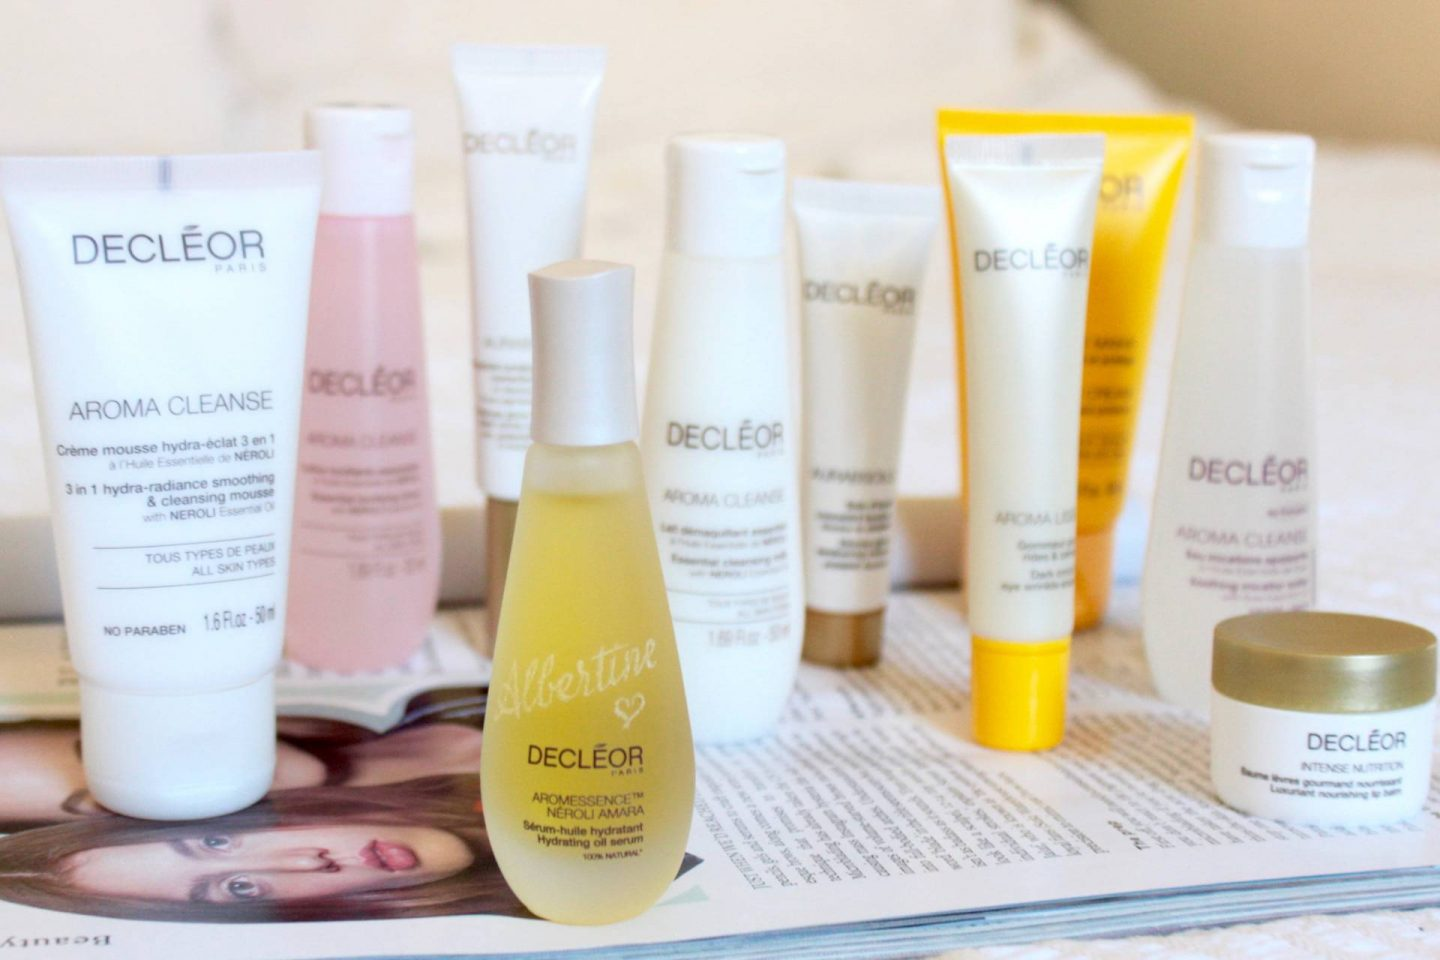 Decleor full collection skincare samples